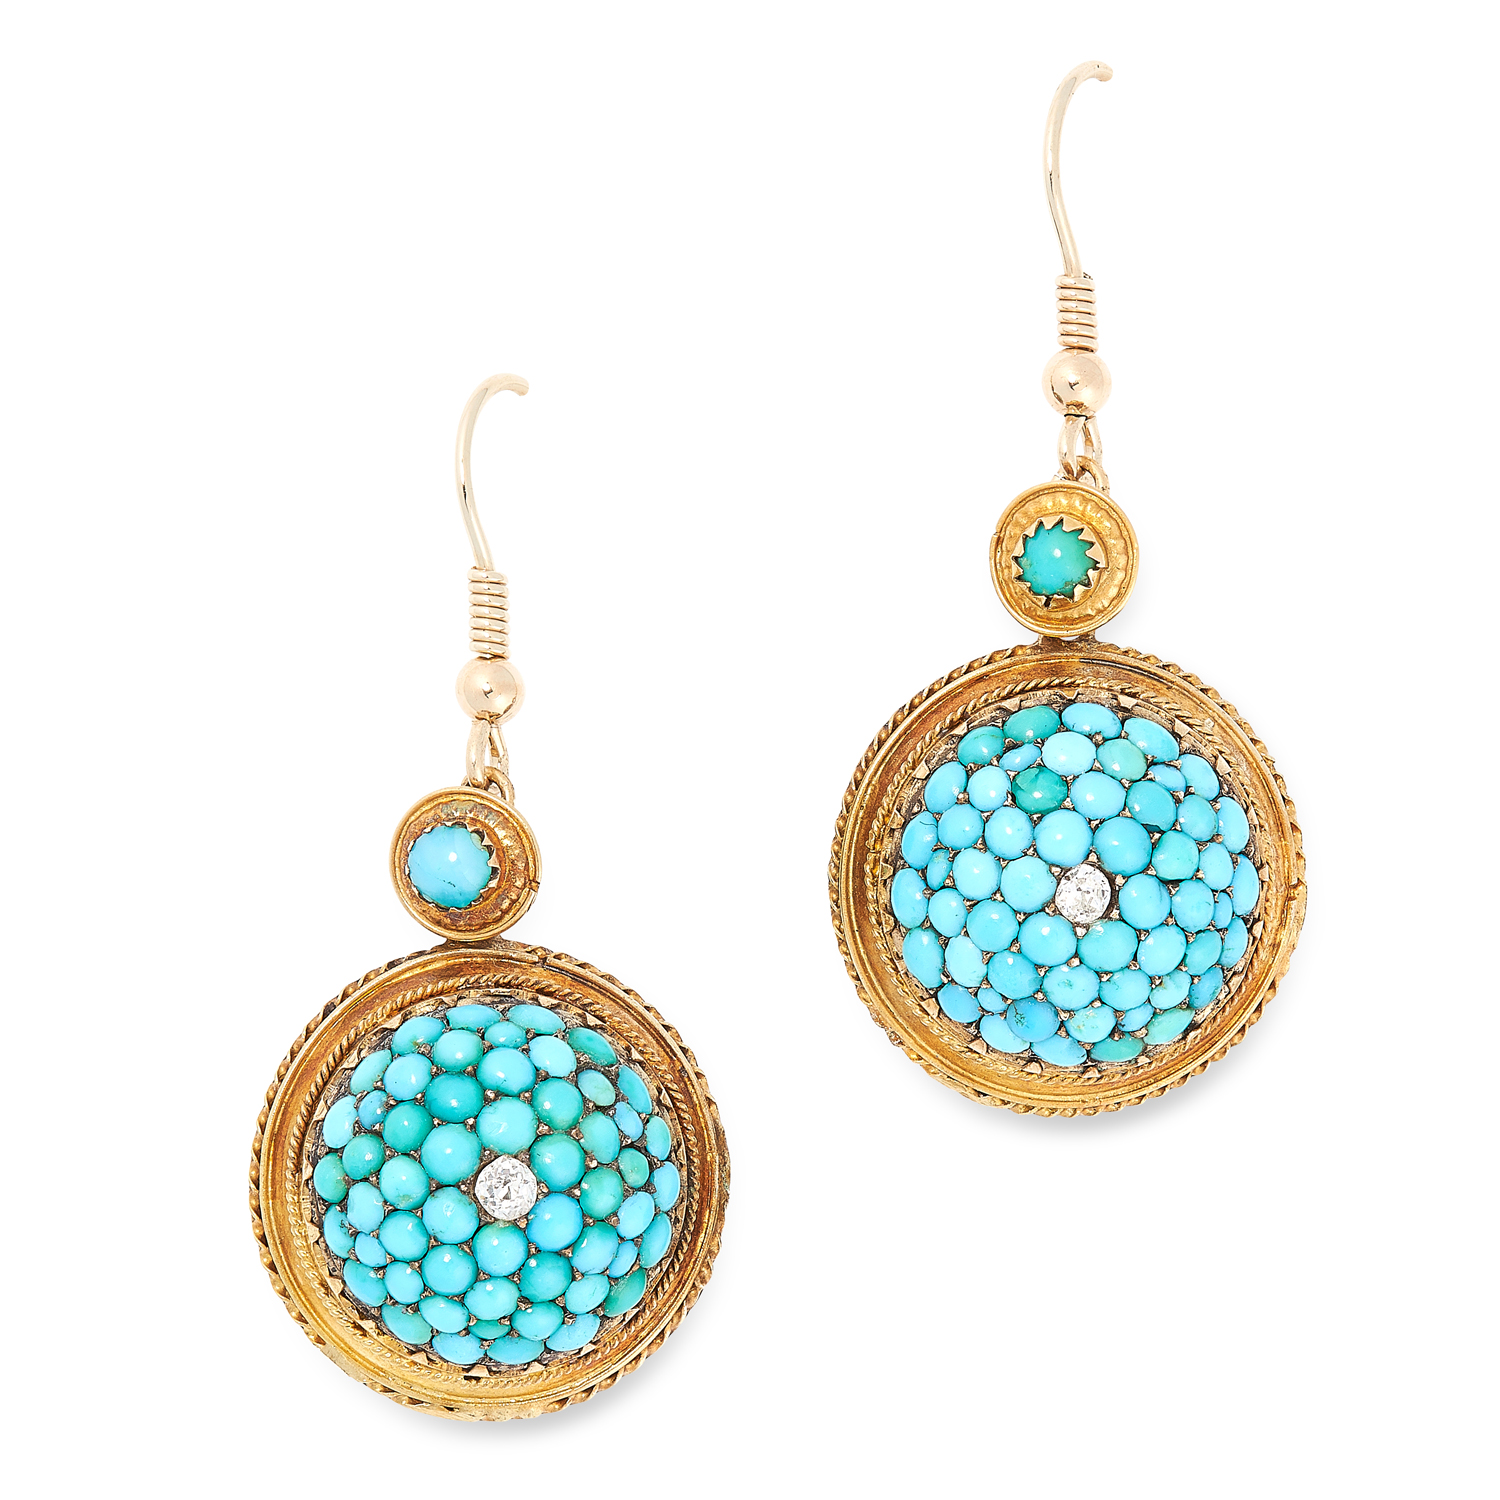 A PAIR OF ANTIQUE TURQUOISE AND DIAMOND EARRINGS in circular form set with cabochon turquoise and an